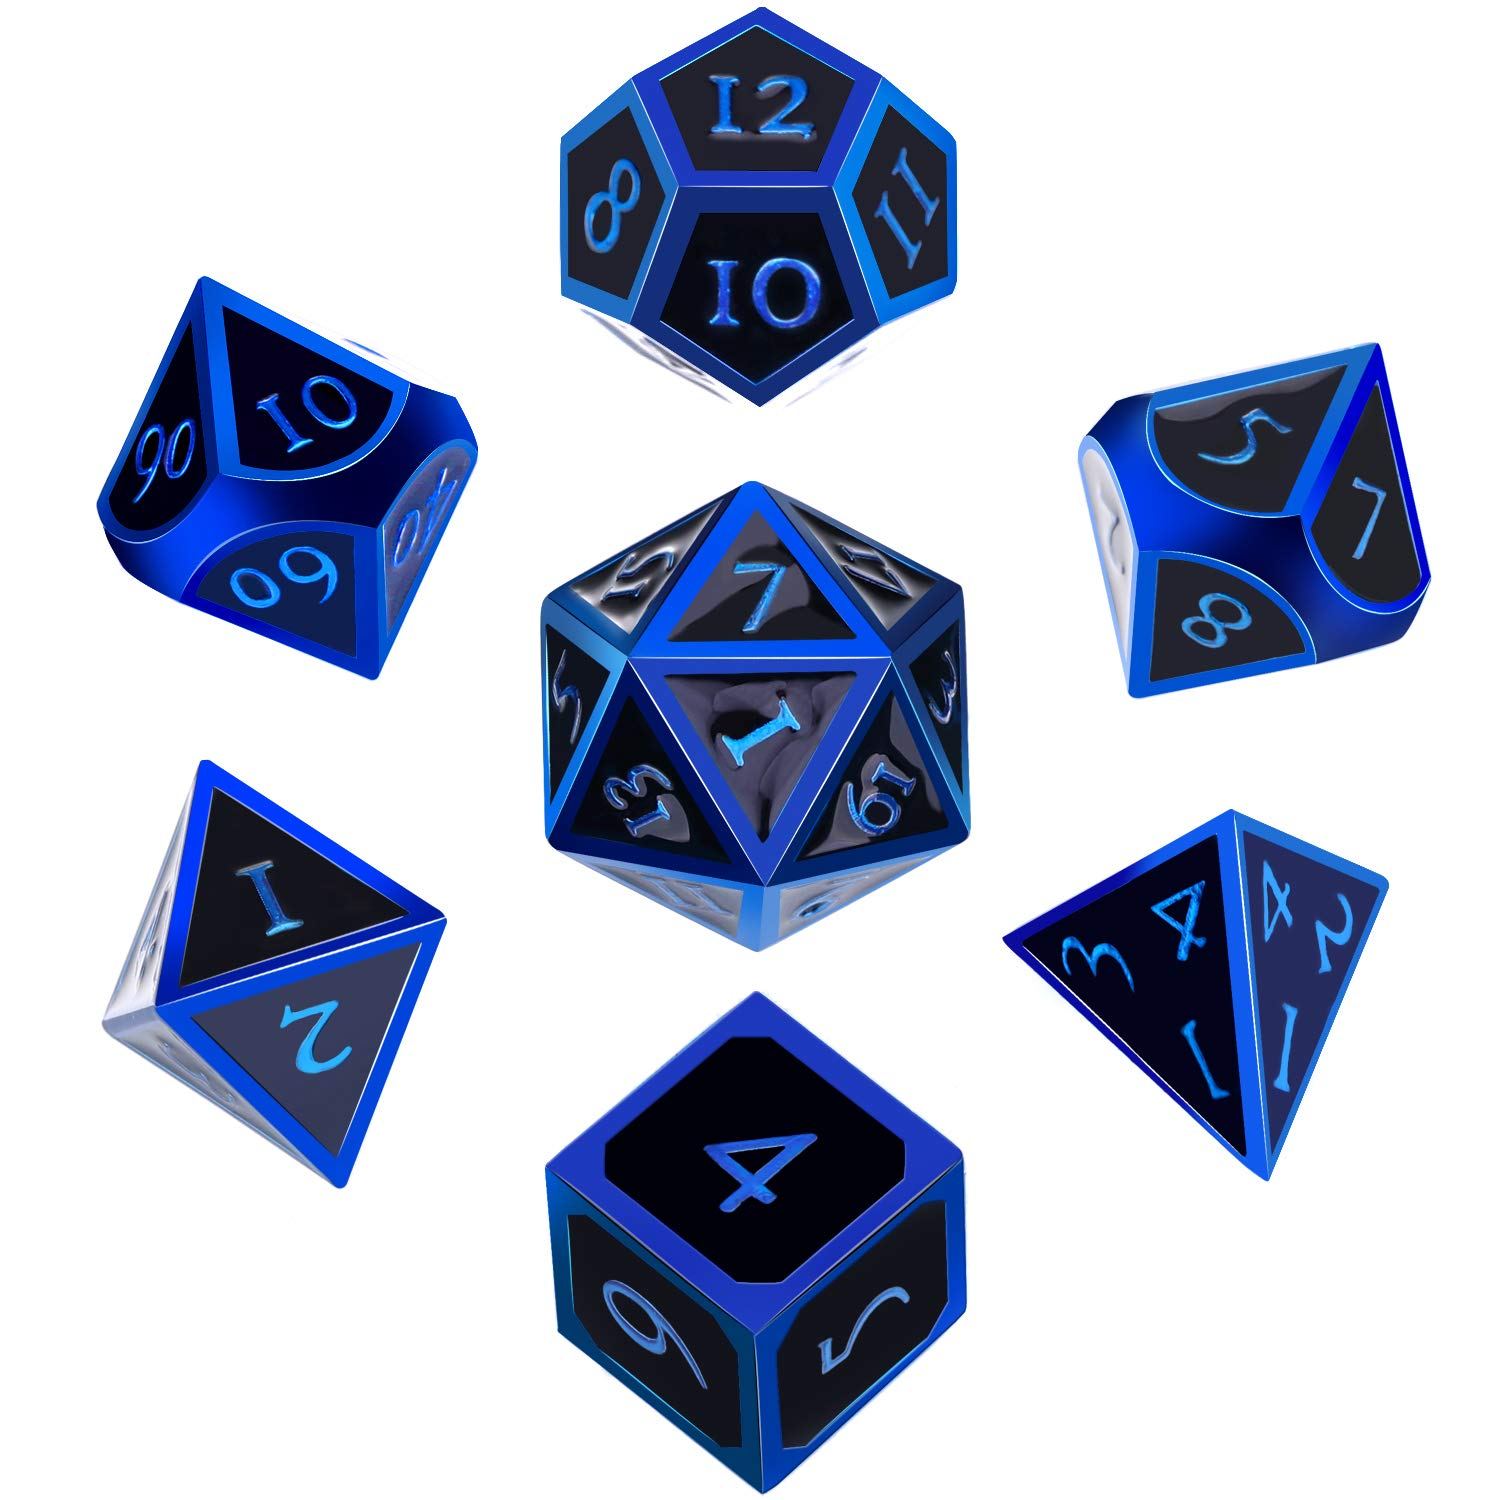 Hestya 7 Pieces Metal Dices Set DND Game Polyhedral Solid Metal D&D Dice Set with Storage Bag and Zinc Alloy with Enamel for Role Playing Game Dungeons and Dragons (Blue Edge Black)